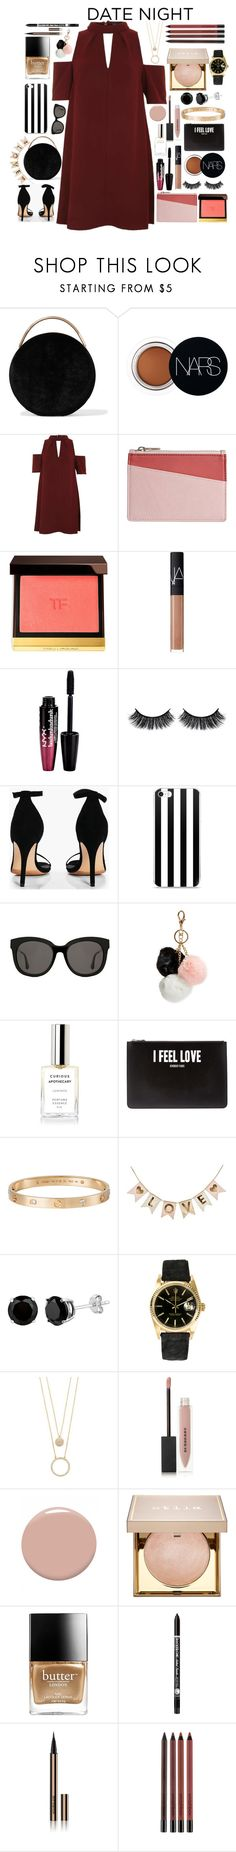 """""""Date Night"""" by catarinahoran21 ❤ liked on Polyvore featuring Eddie Borgo, NARS Cosmetics, Topshop, STOW, Tom Ford, Charlotte Russe, Battington, Boohoo, Gentle Monster and GUESS"""